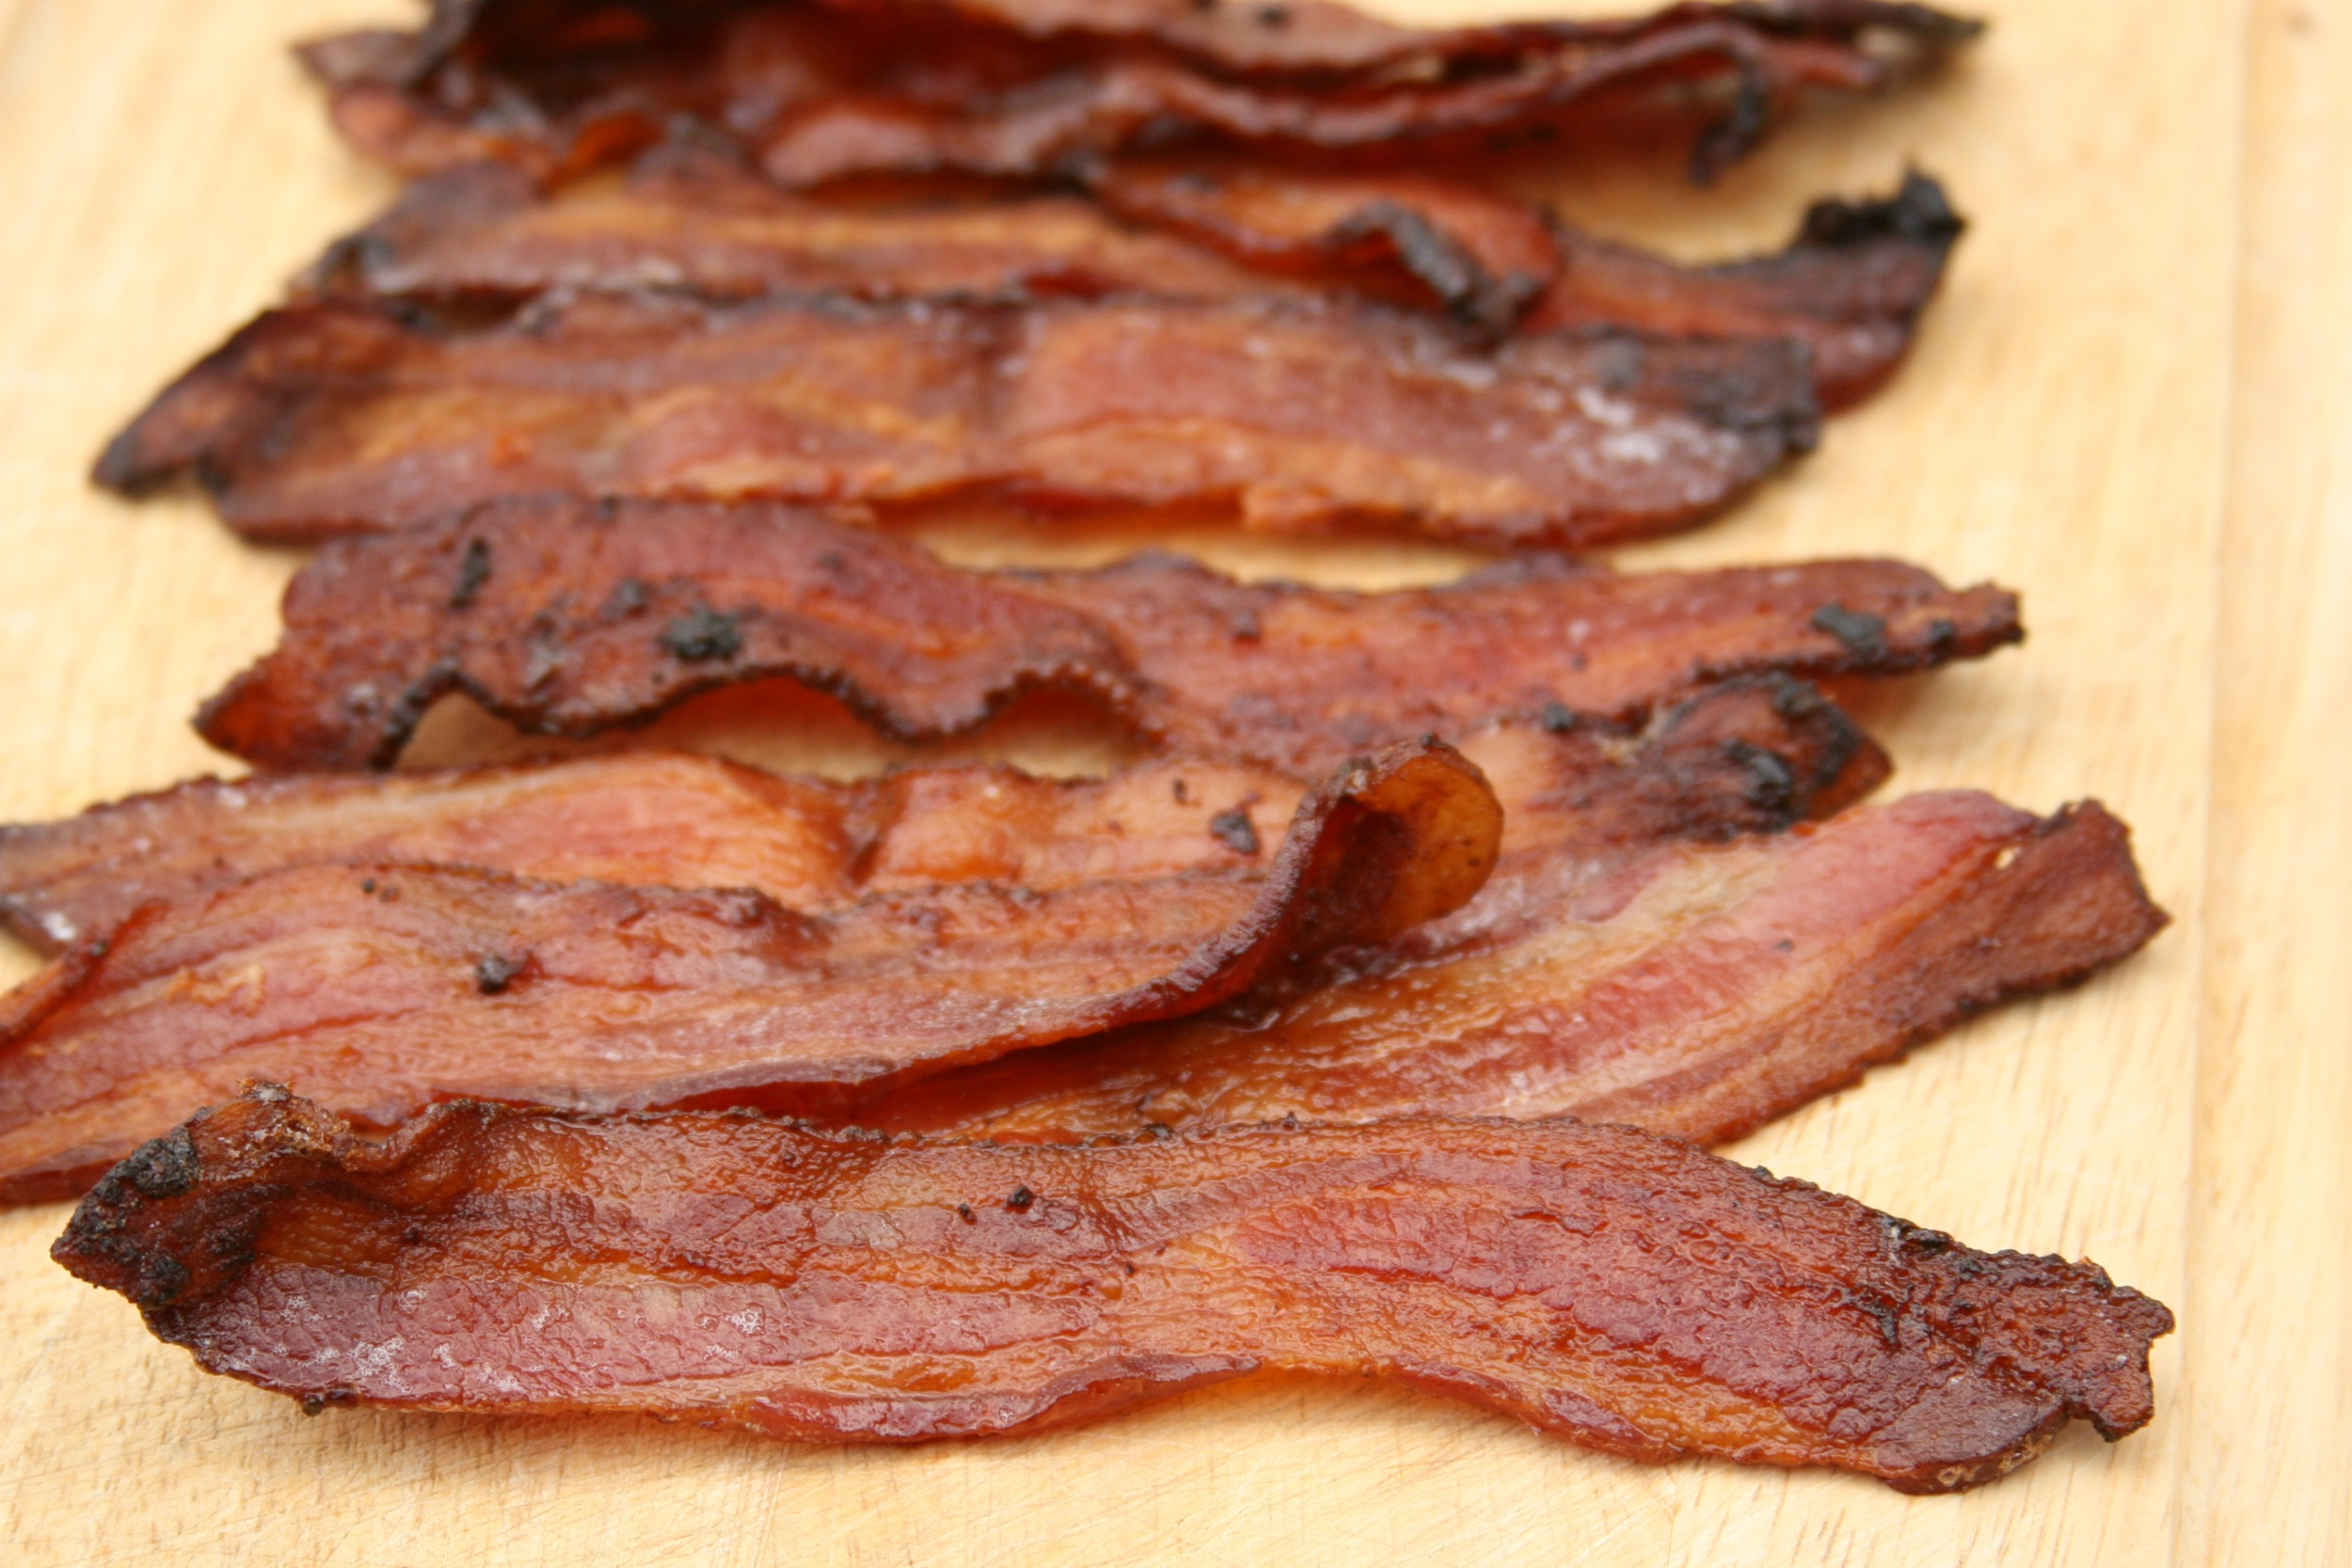 Get the #recipe for Maple Pepper Bacon #maple #recipes #foodblogger #bacon